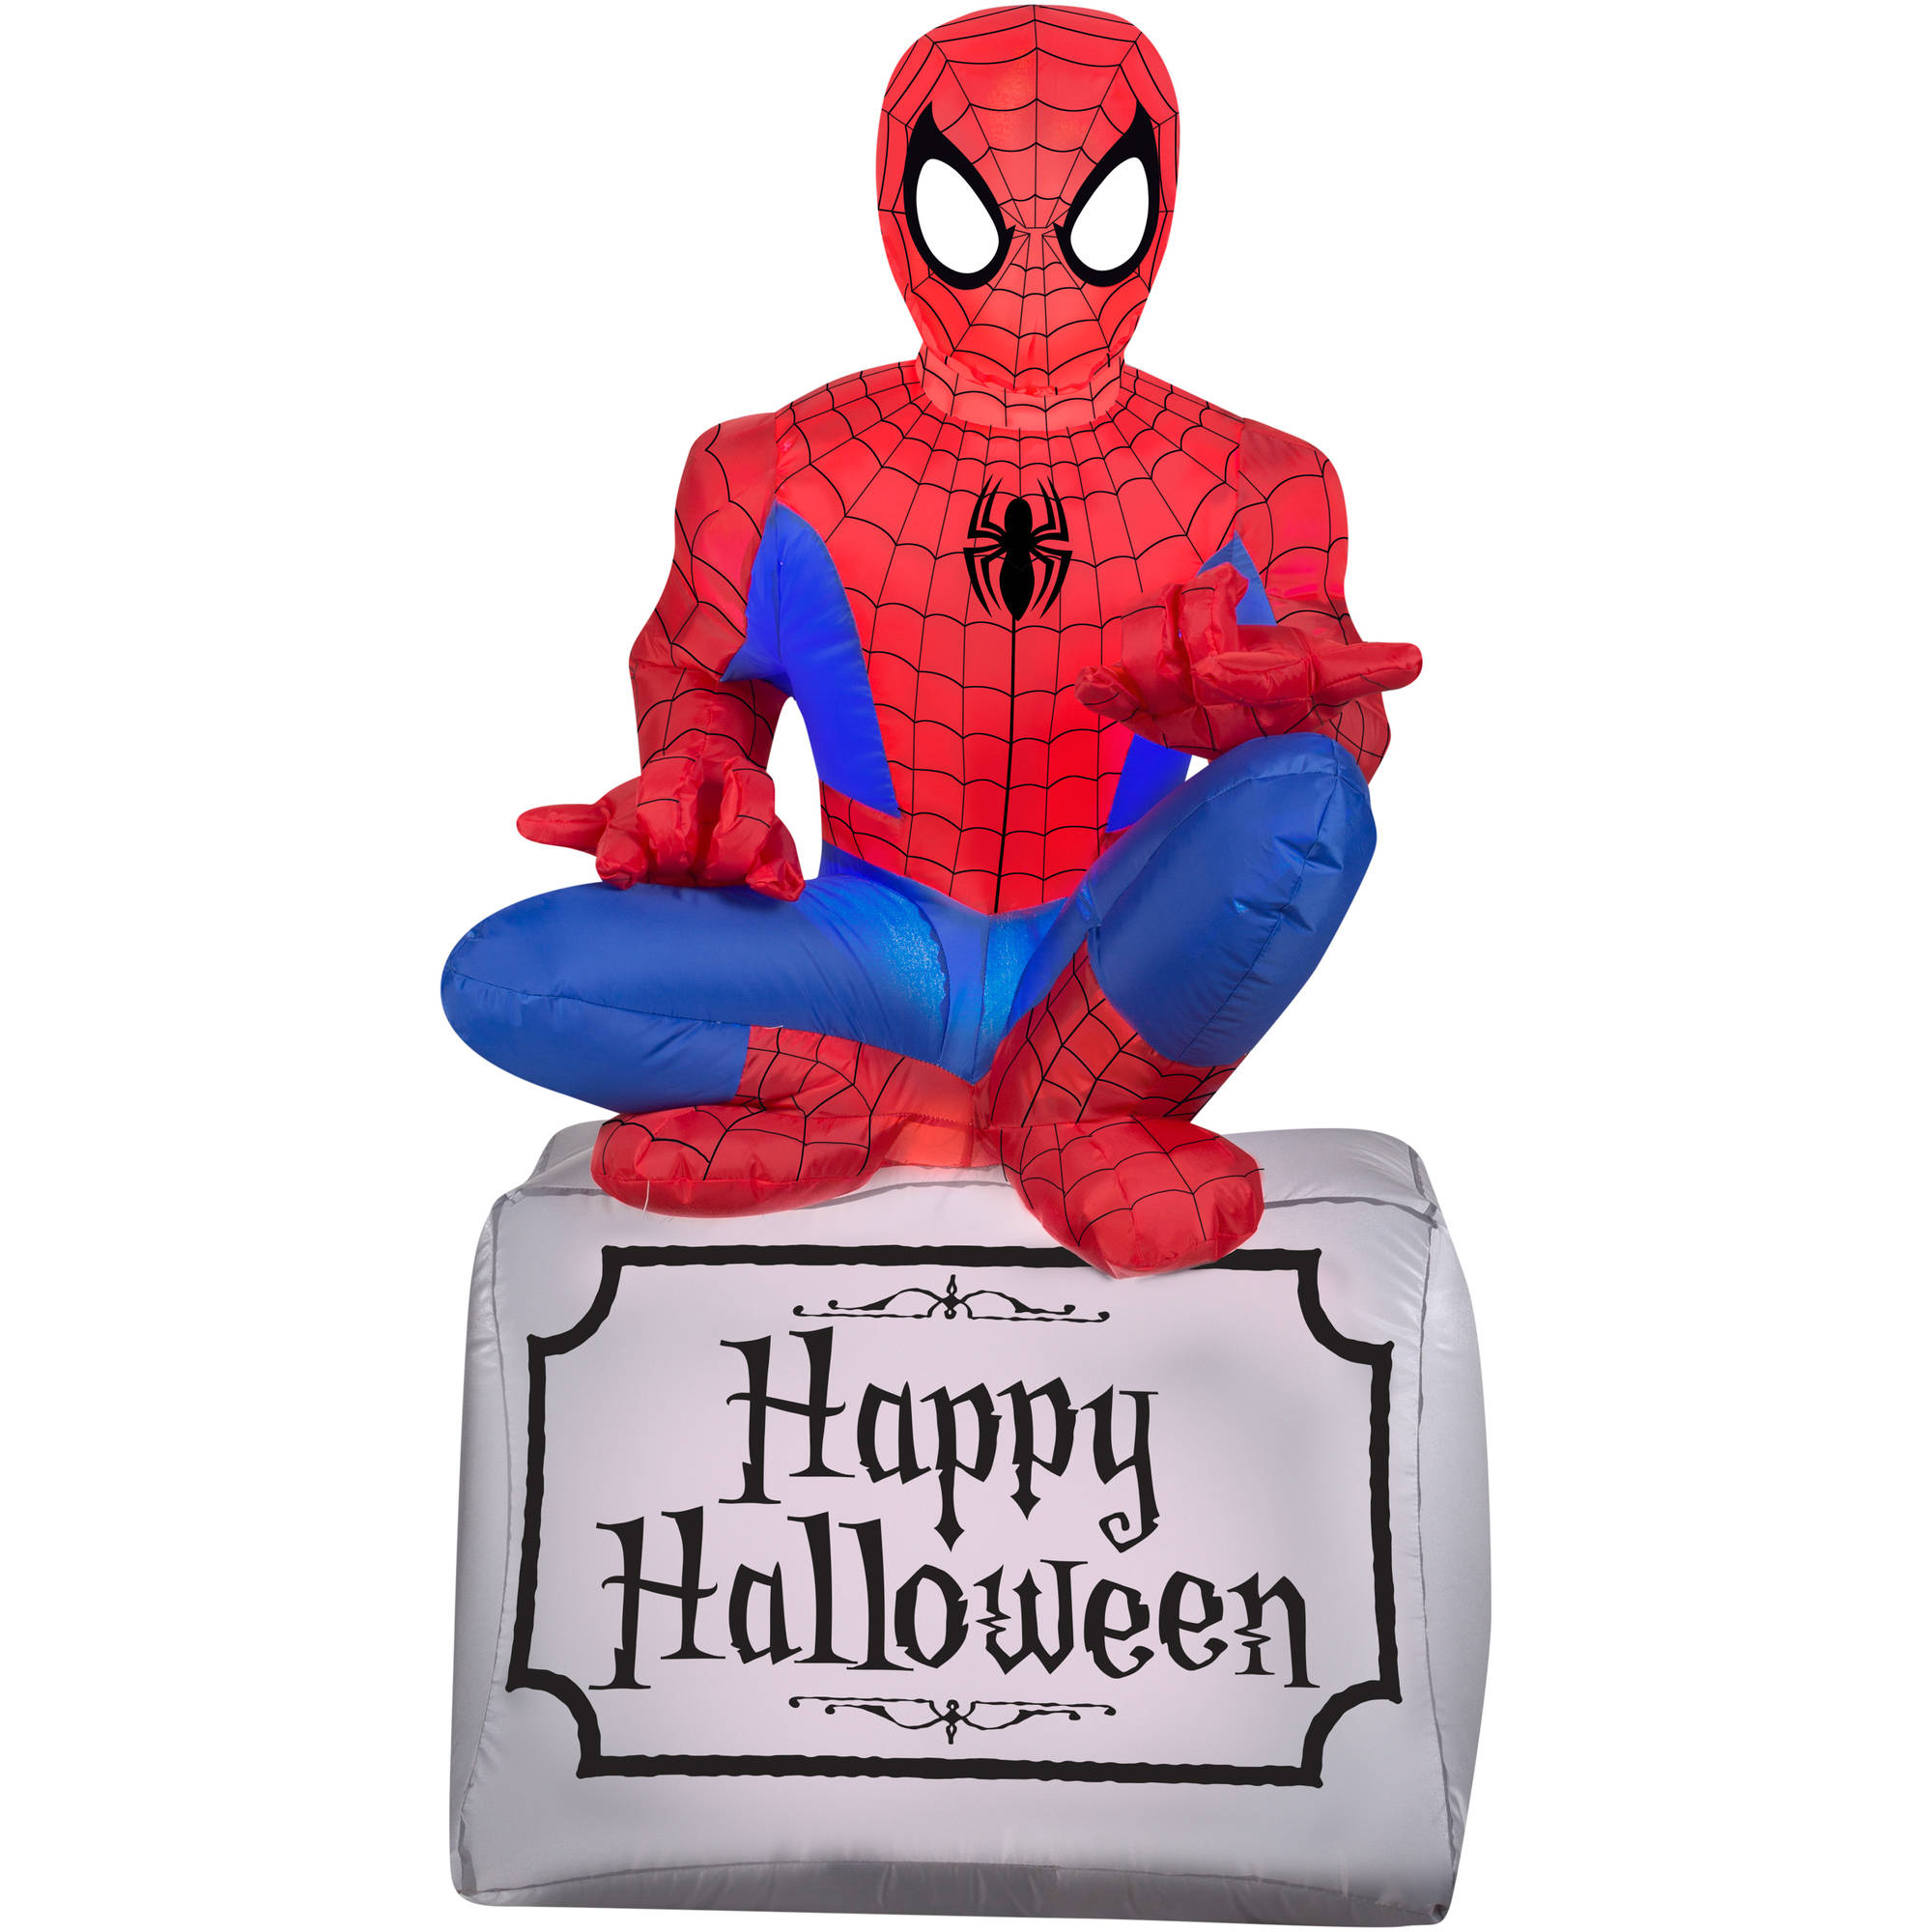 Gemmy Airblown Inflatable 3.5' X 2' Spider-Man On Tombstone Halloween Decoration